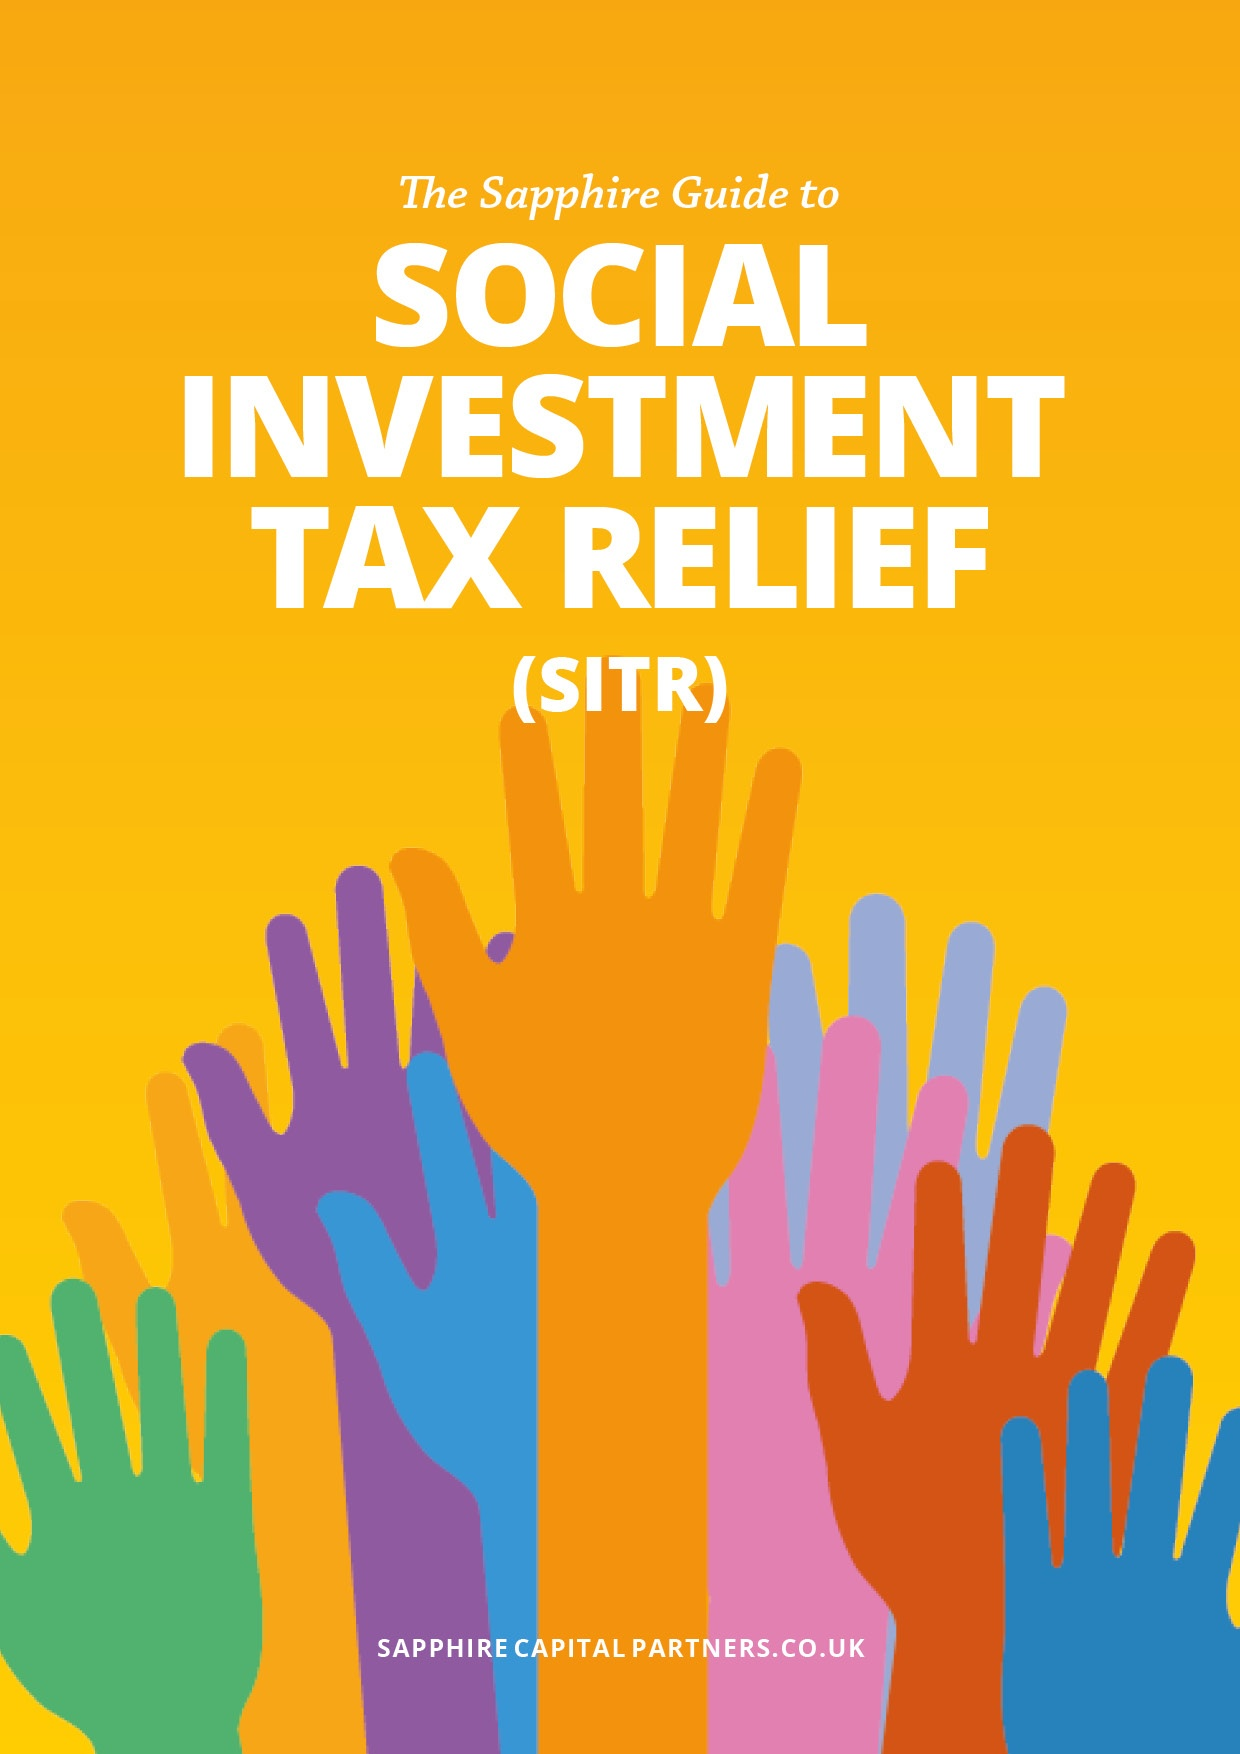 The Sapphire Guide to Social Investment Tax Relief SITR